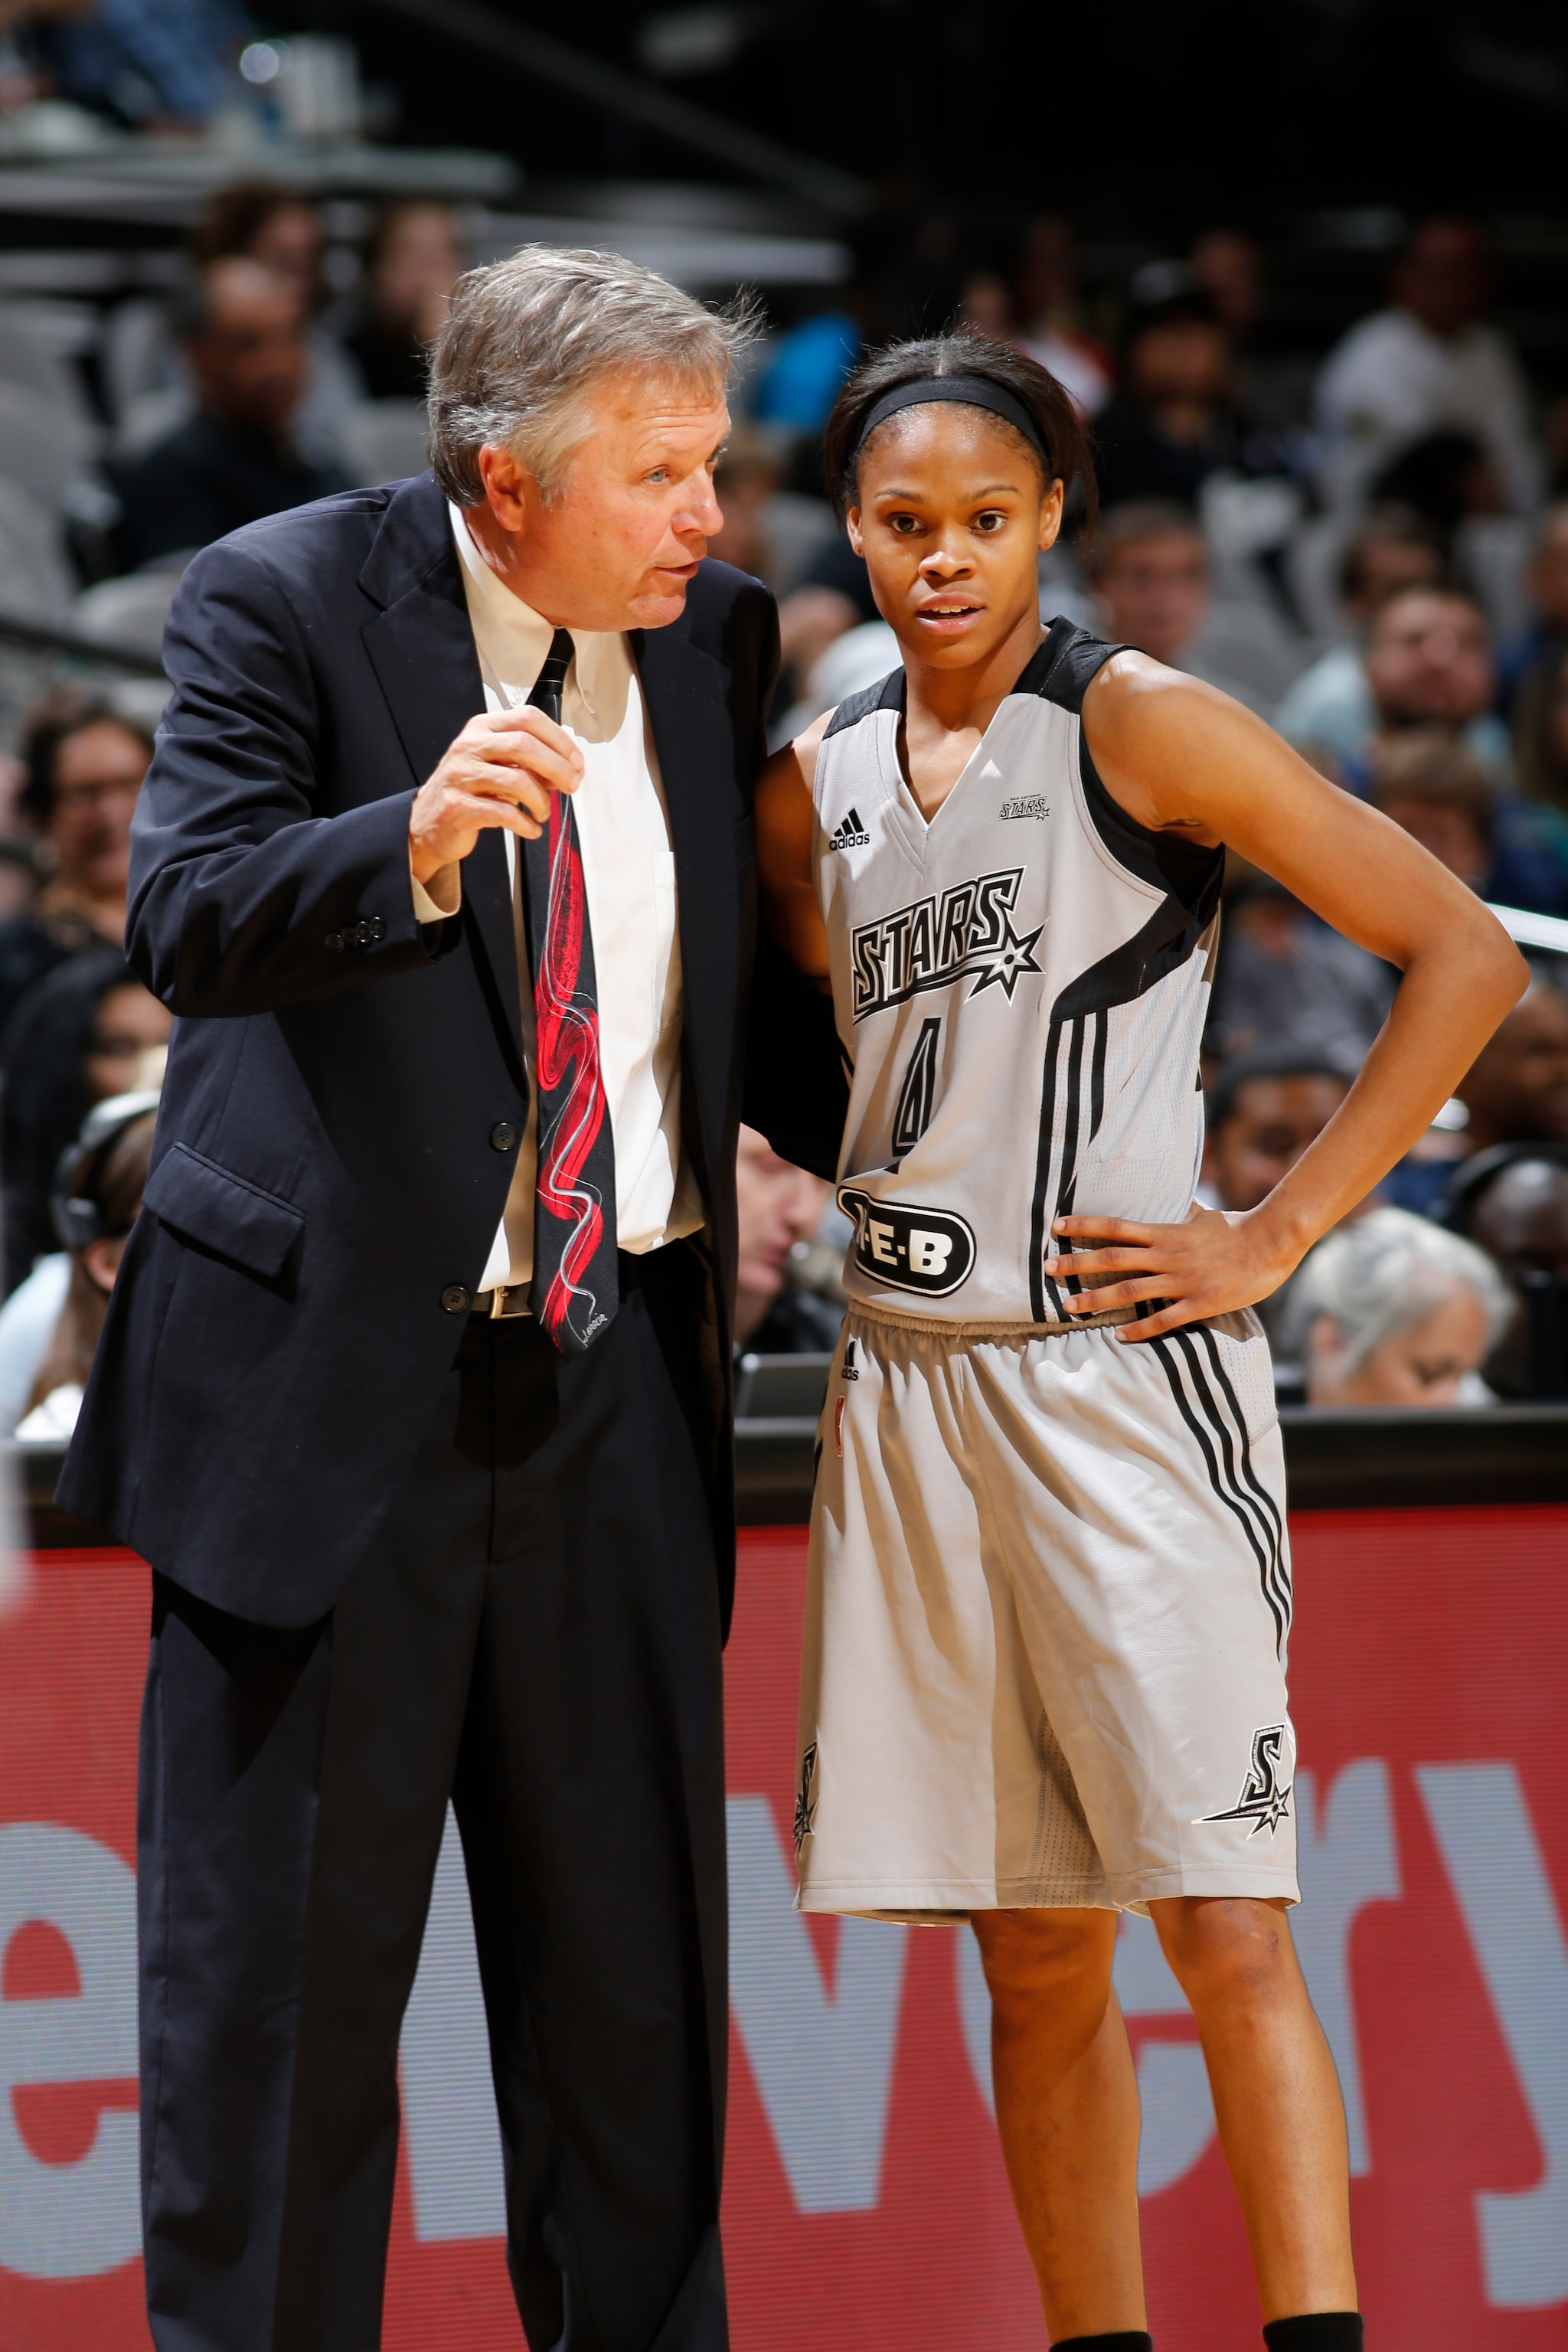 SAN ANTONIO, TX - MAY 14: Moriah Jefferson #4 of the San Antonio Stars and head coach, Dan Hughes during the game against the .at on May 14, 2016 at AT&T Center in San Antonio, Texas. NOTE TO USER: User expressly acknowledges and agrees that, by downloading and or using this Photograph, user is consenting to the terms and conditions of the Getty Images License Agreement. Mandatory Copyright Notice: Copyright 2016 NBAE (Photo by Chris Covatta/NBAE via Getty Images)